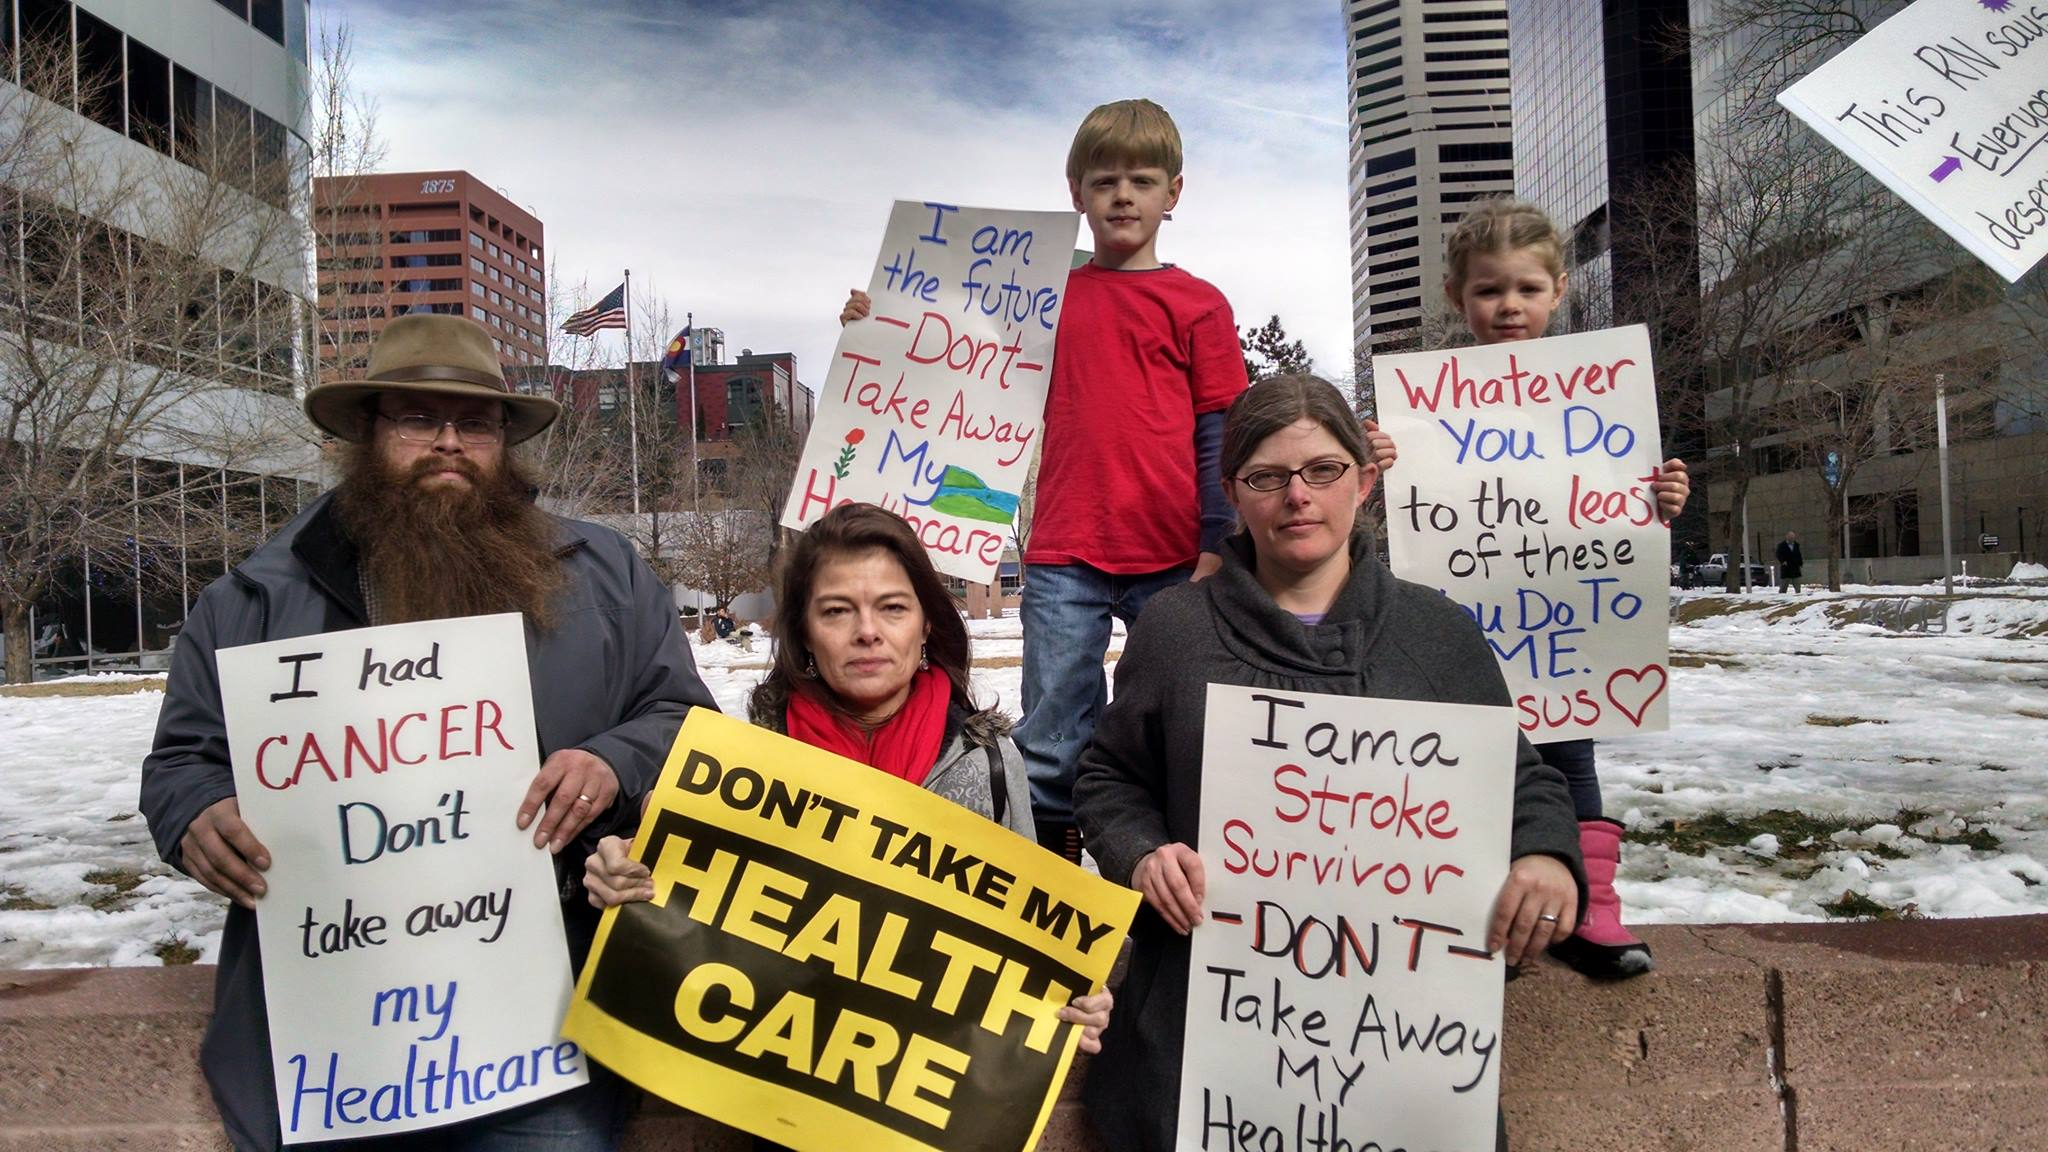 Protesters in Colorado appealing to Senator Cory Gardner: